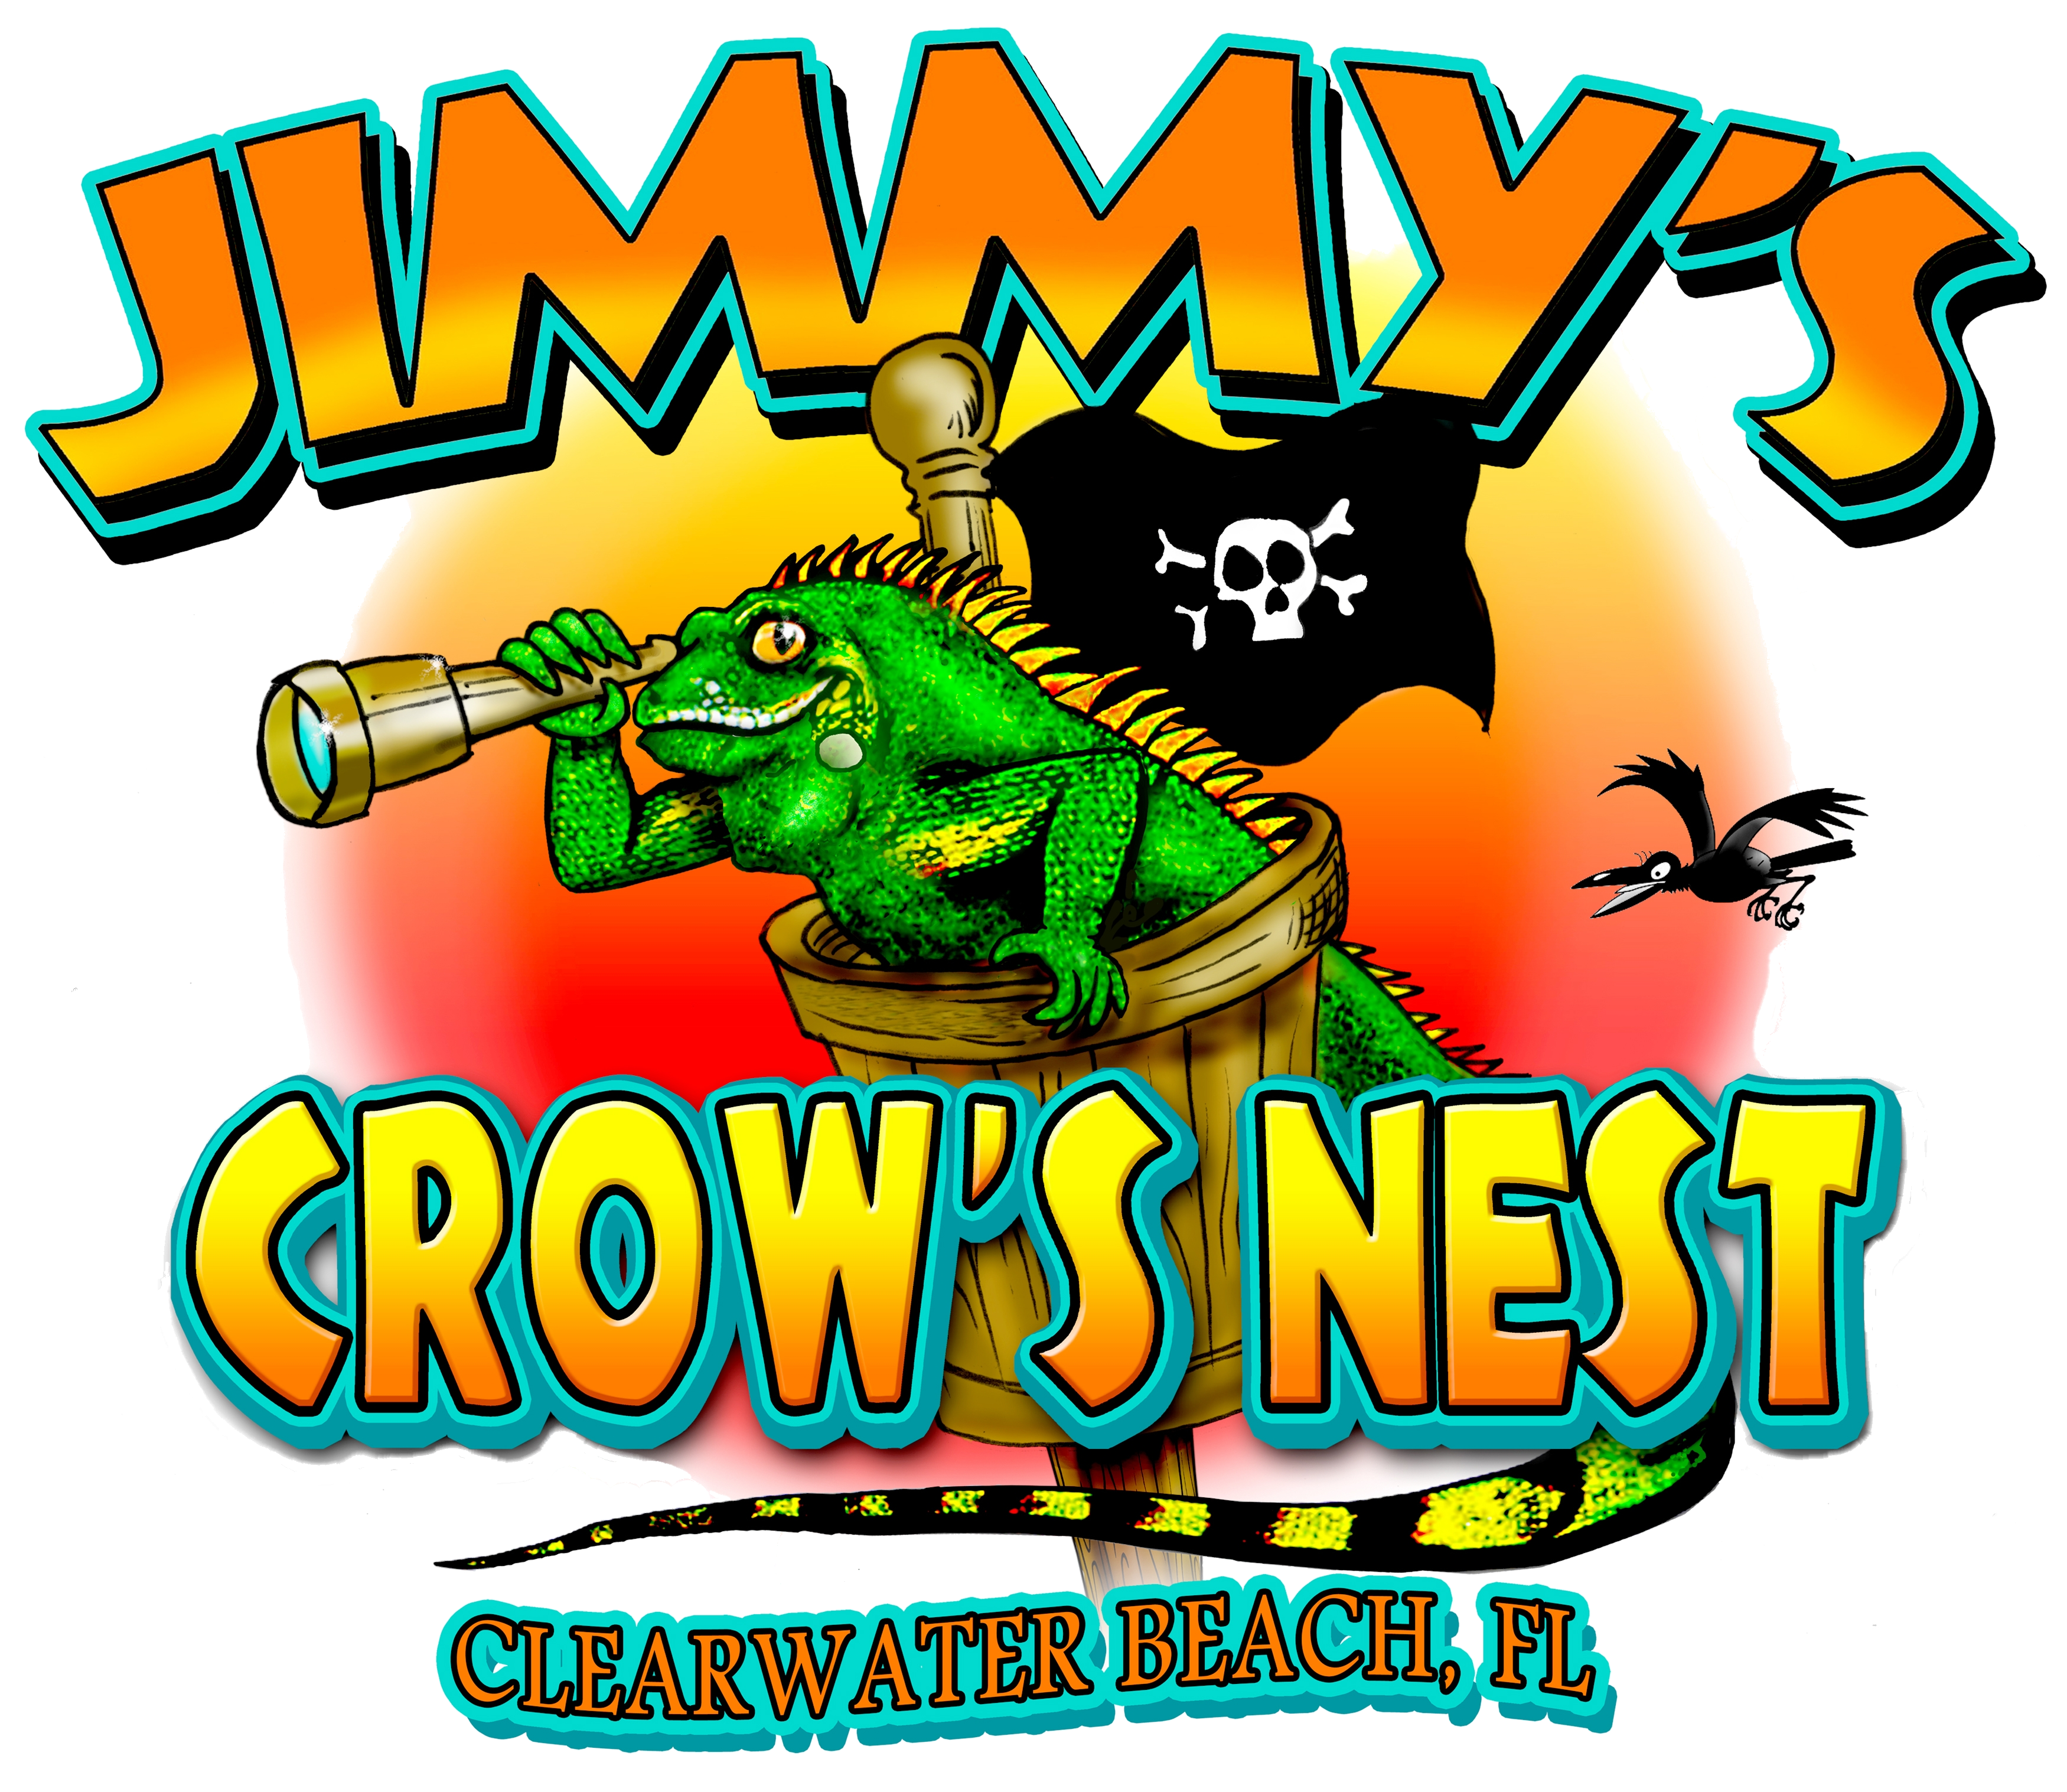 Jimmy's Crow's Nest